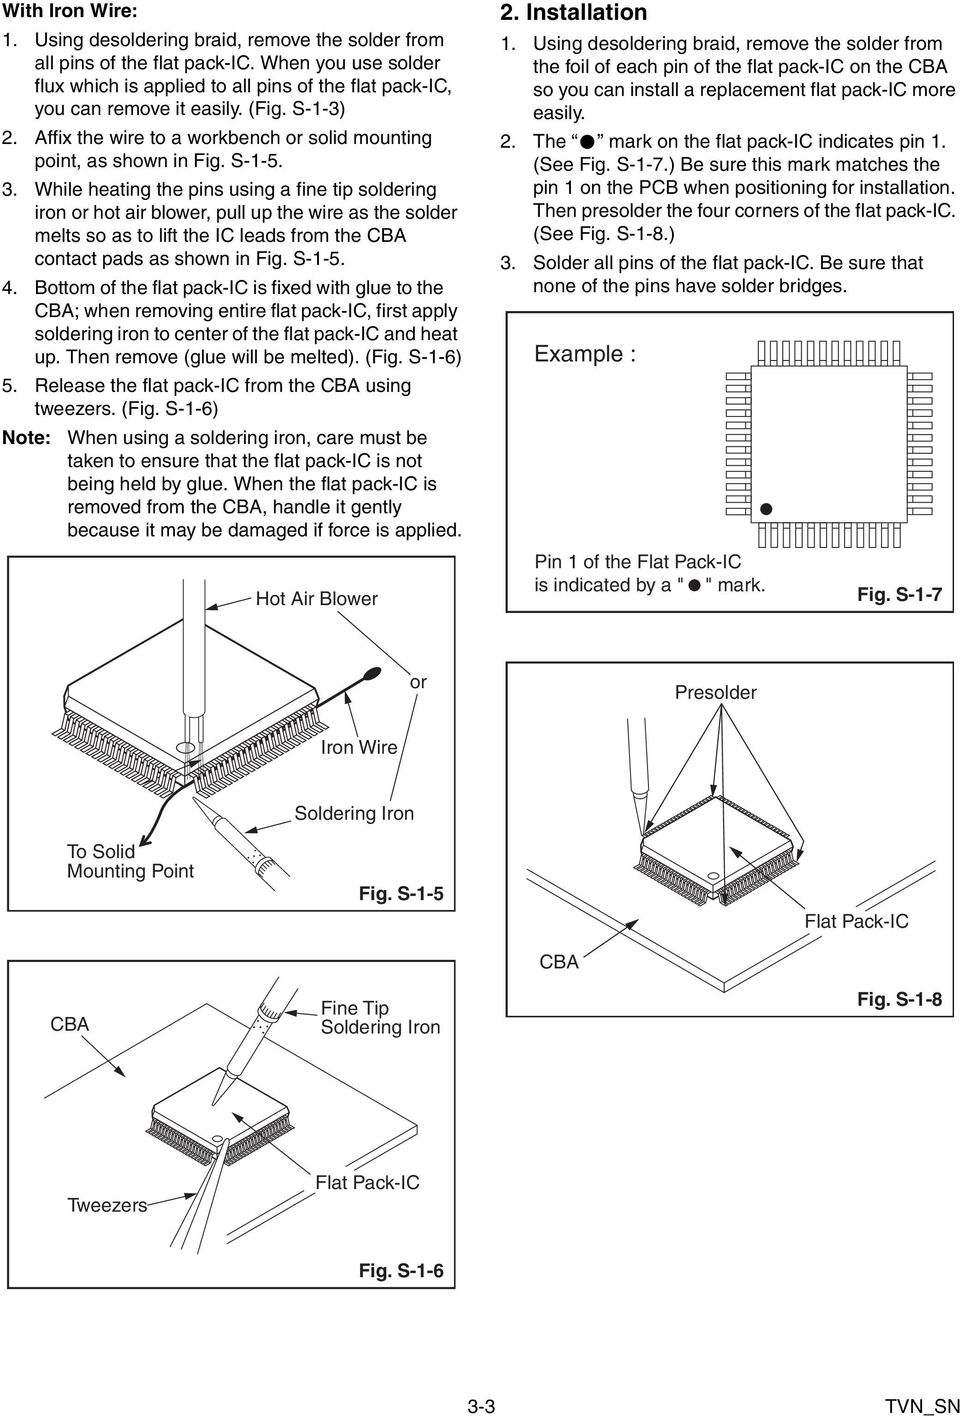 Service Manual Contents Pdf Wiring Diagrams 5 Wire Relay Diagram Fuseand5polerelay While Heating The Pins Using A Fine Tip Soldering Iron Or Hot Air Blower Pull